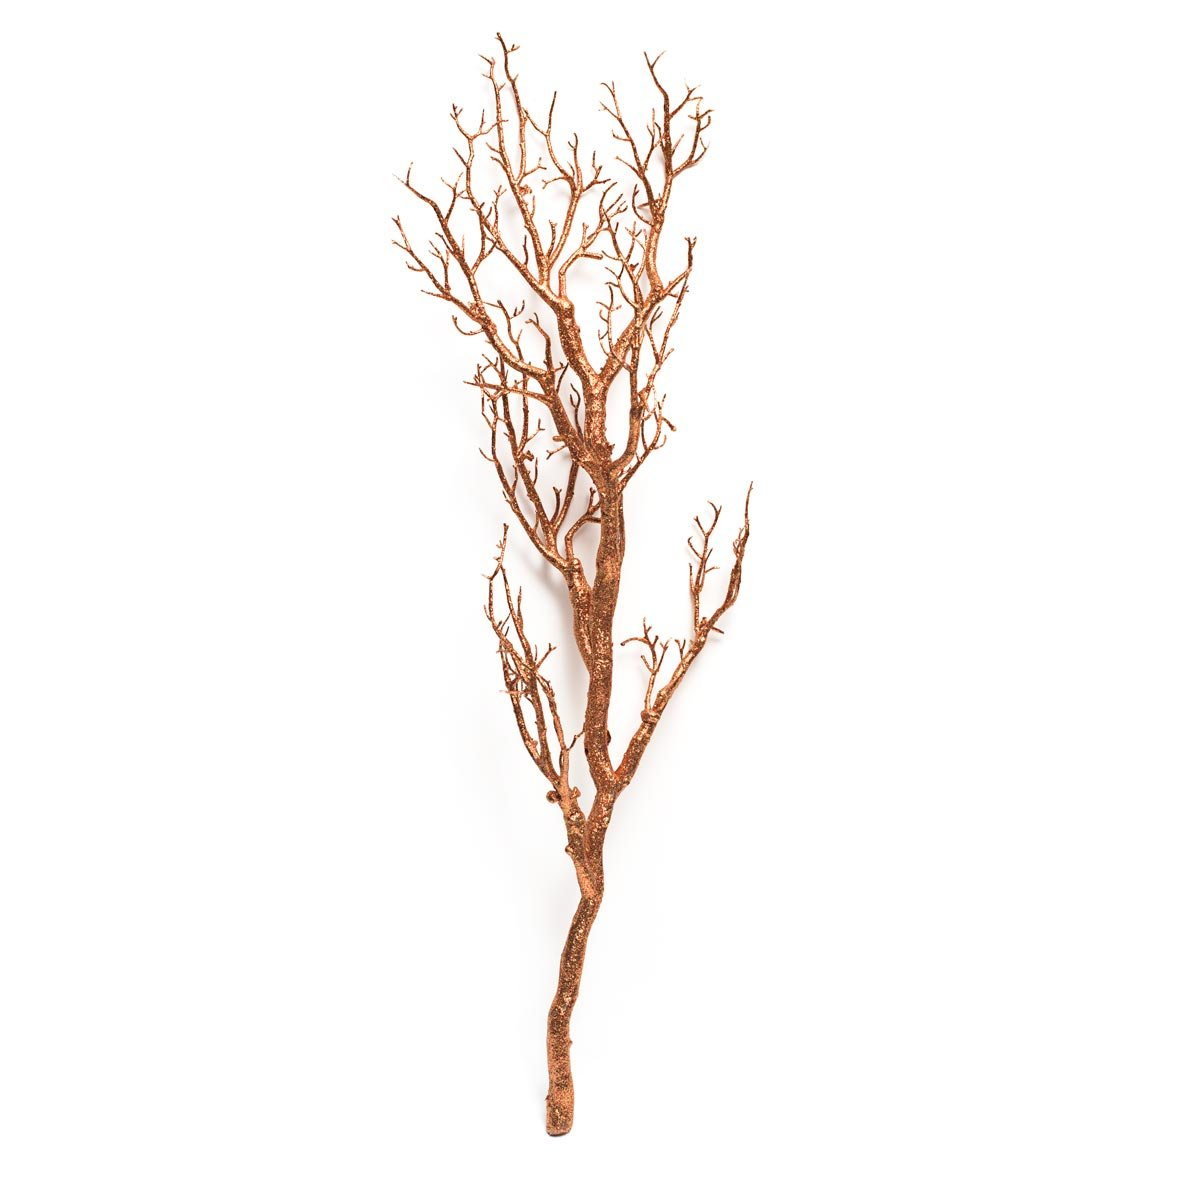 Anderson S Sparkling Copper Glitter Manzanita Decorative Tree Branch 47 Inches Long Home Kitchen